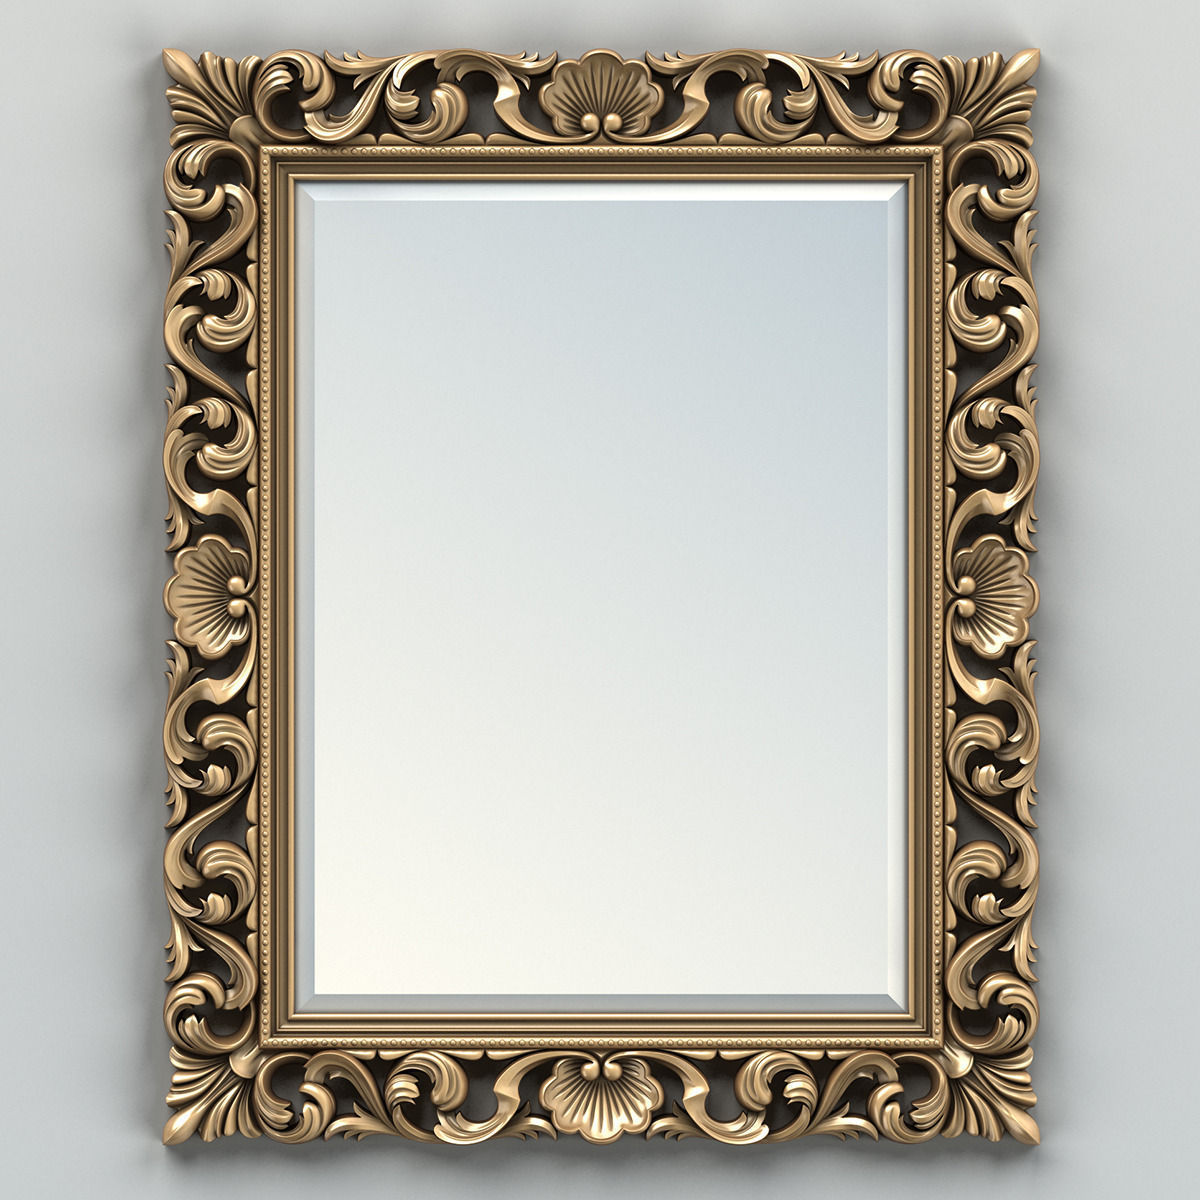 Rectangle mirror frame 006 3D | CGTrader